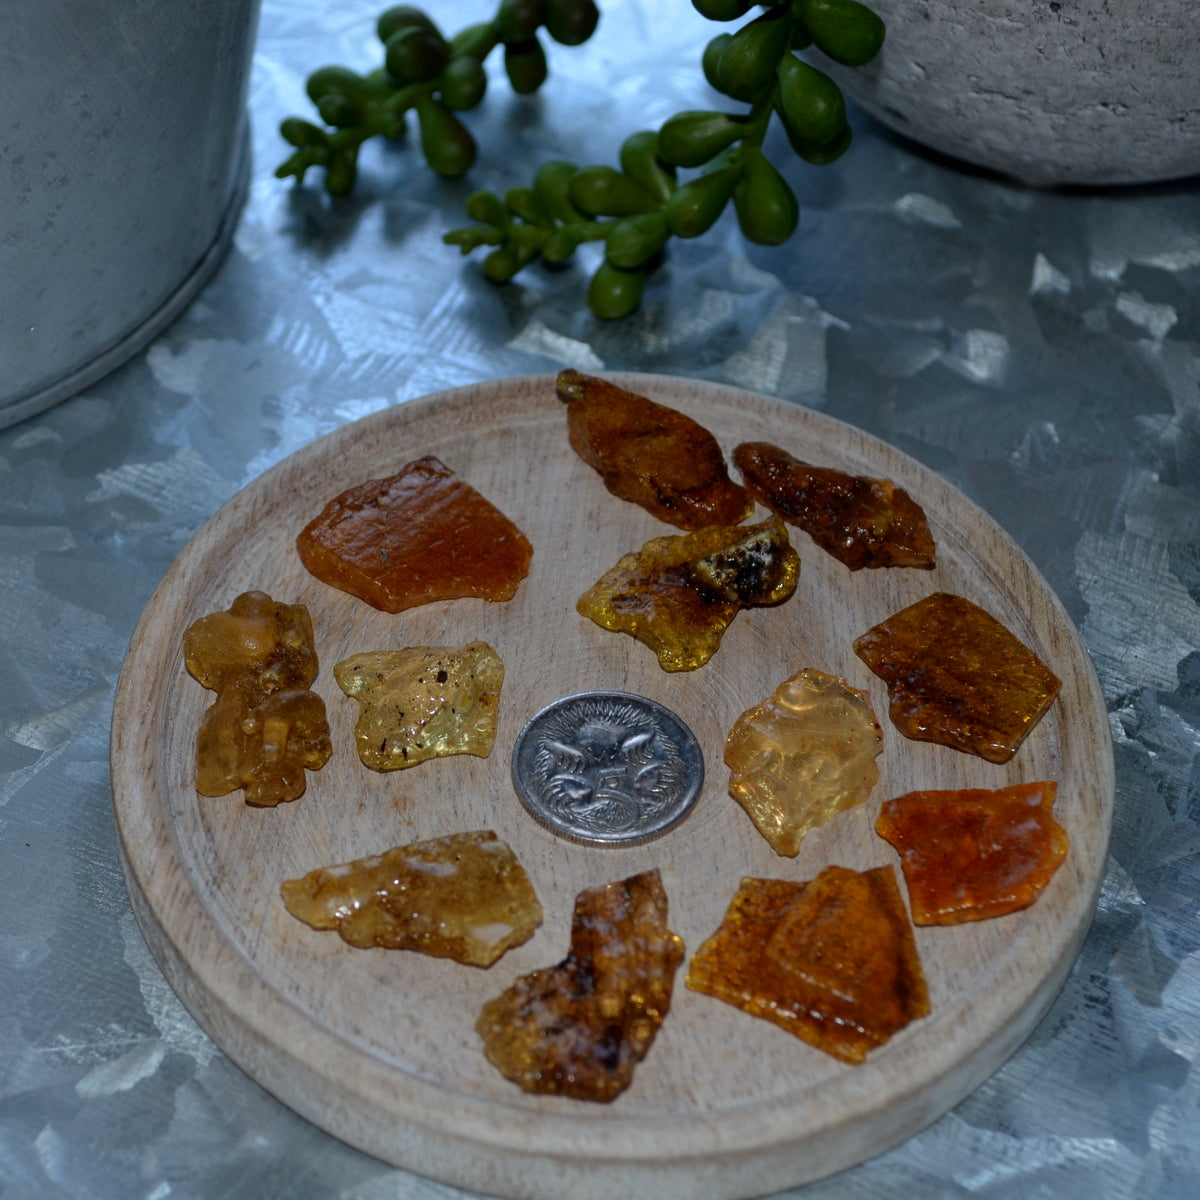 Copal Amber With Inclusions Specimens at Illiom Crystals - Afterpay Available